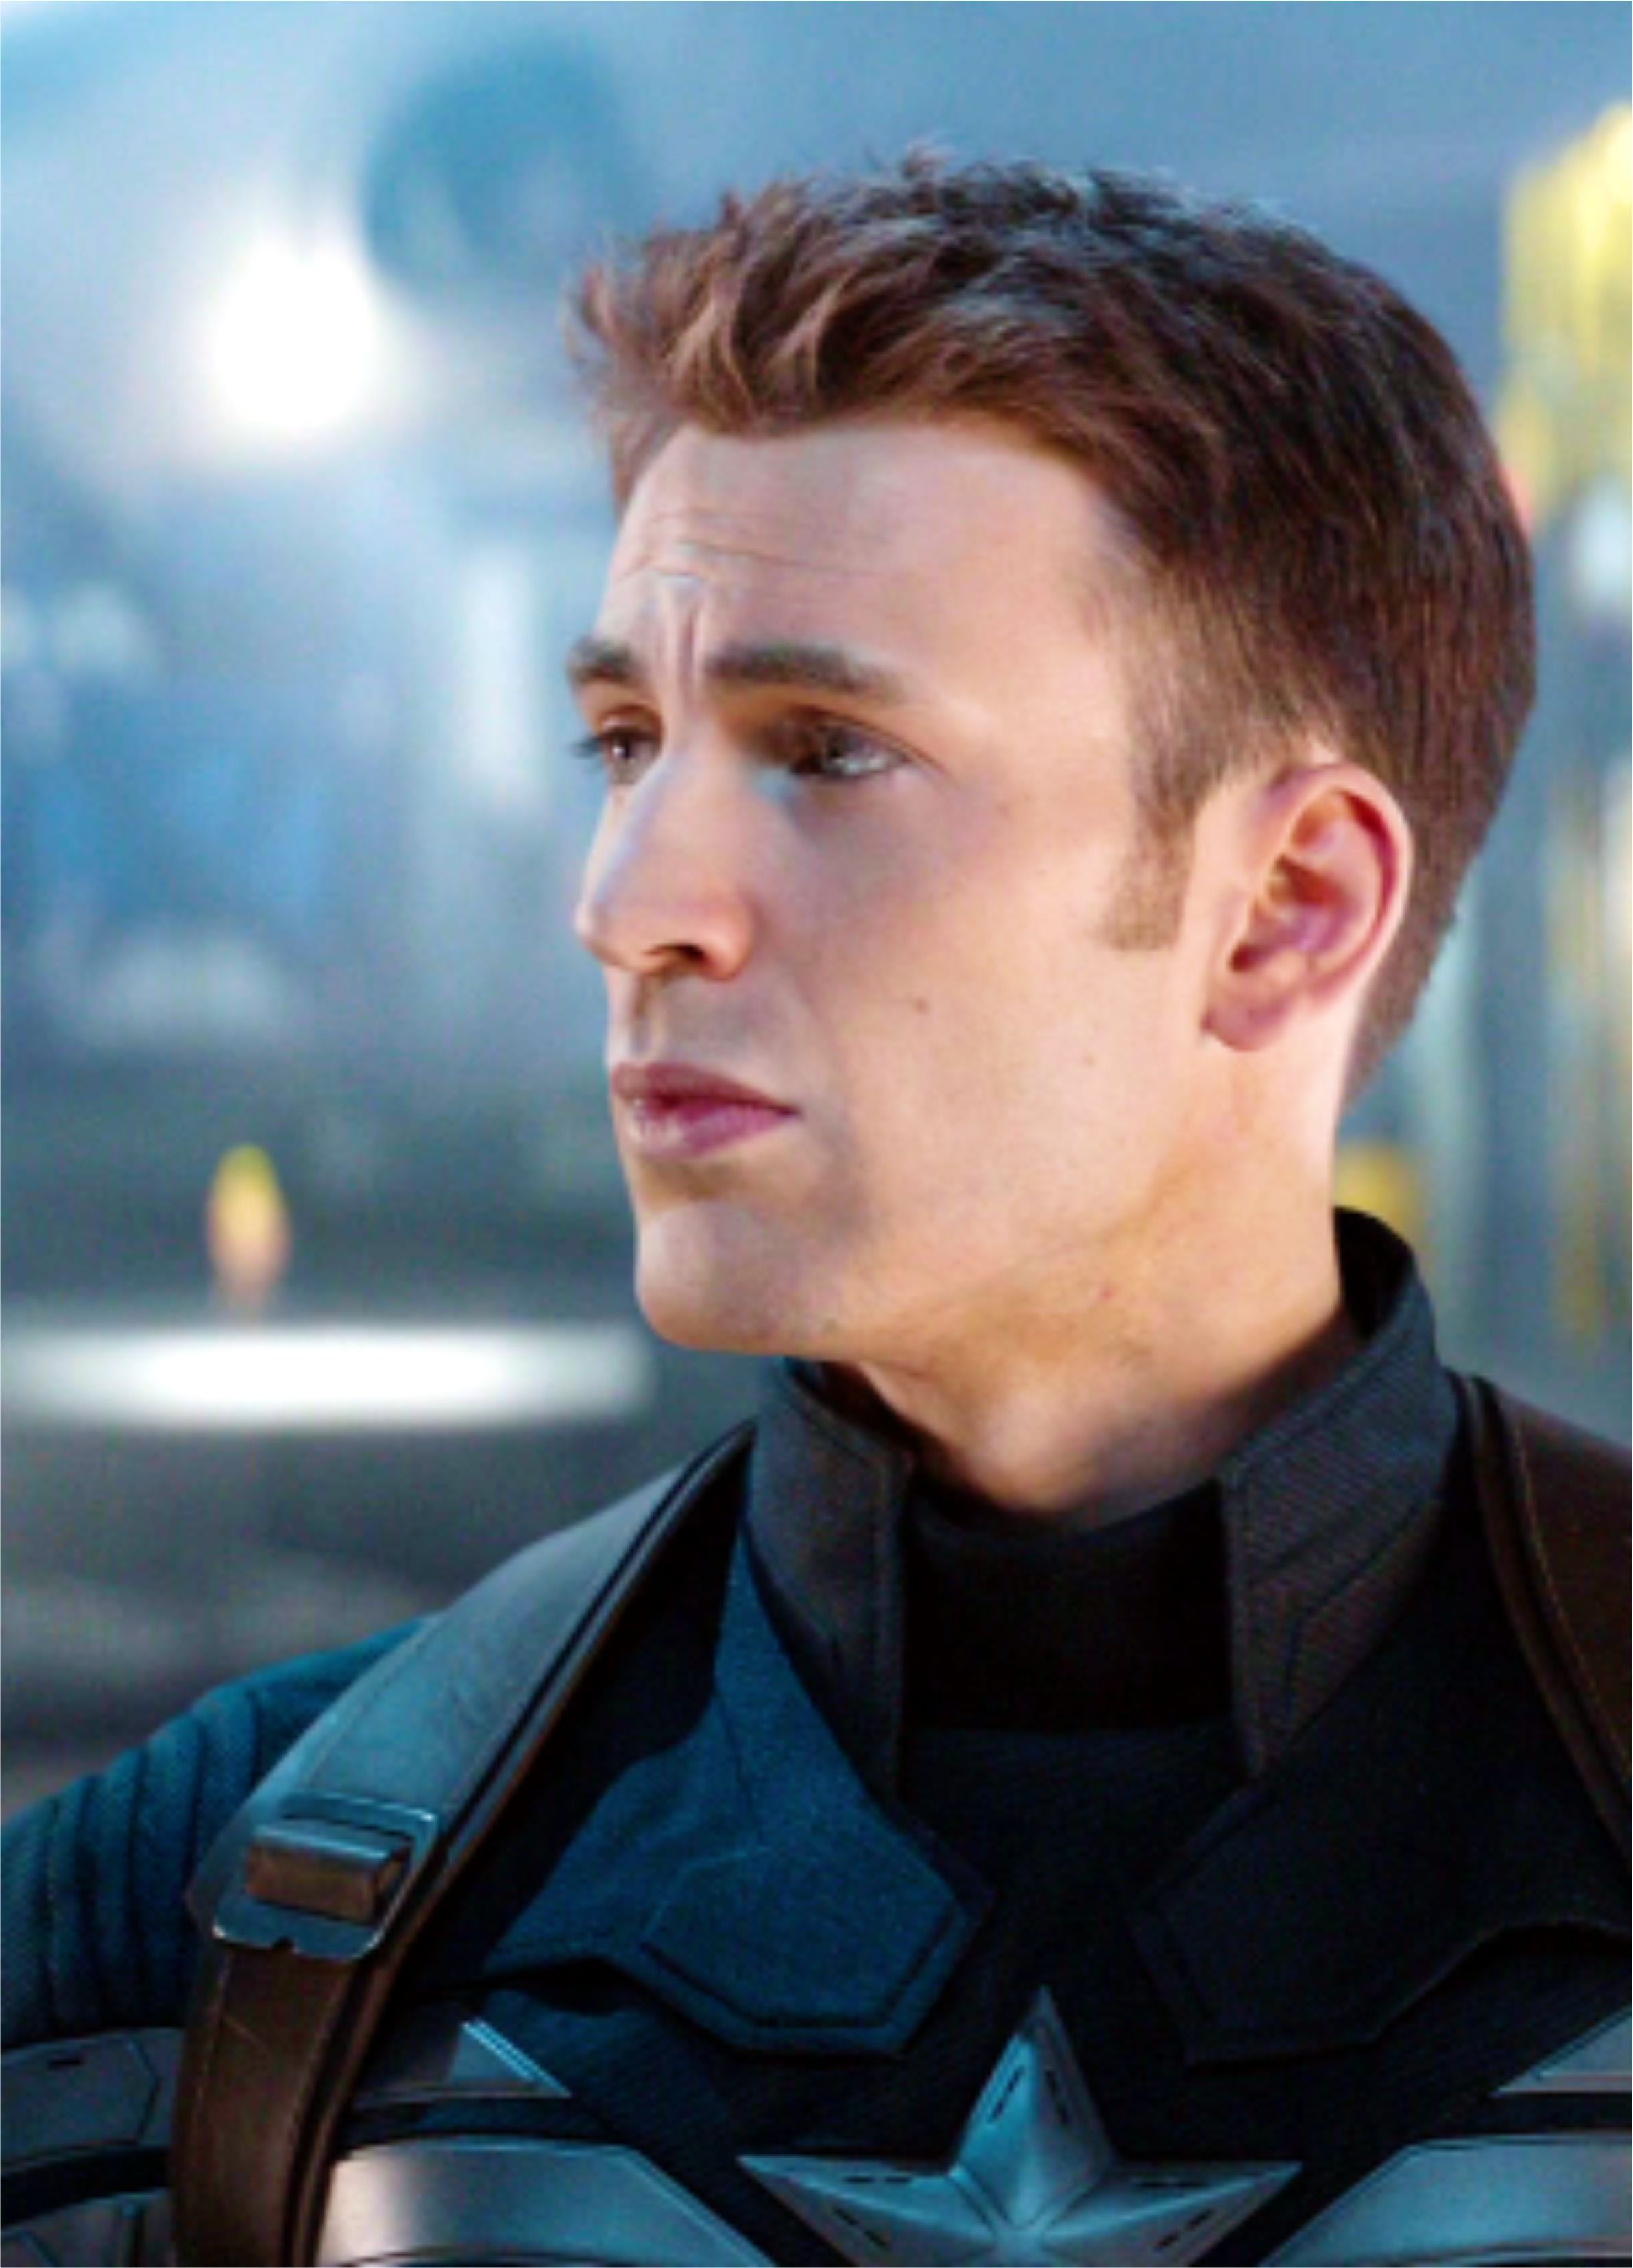 Winter Soldier Hair : winter, soldier, Chris, Evans, Haircut, Winter, Soldier, Hairstyle